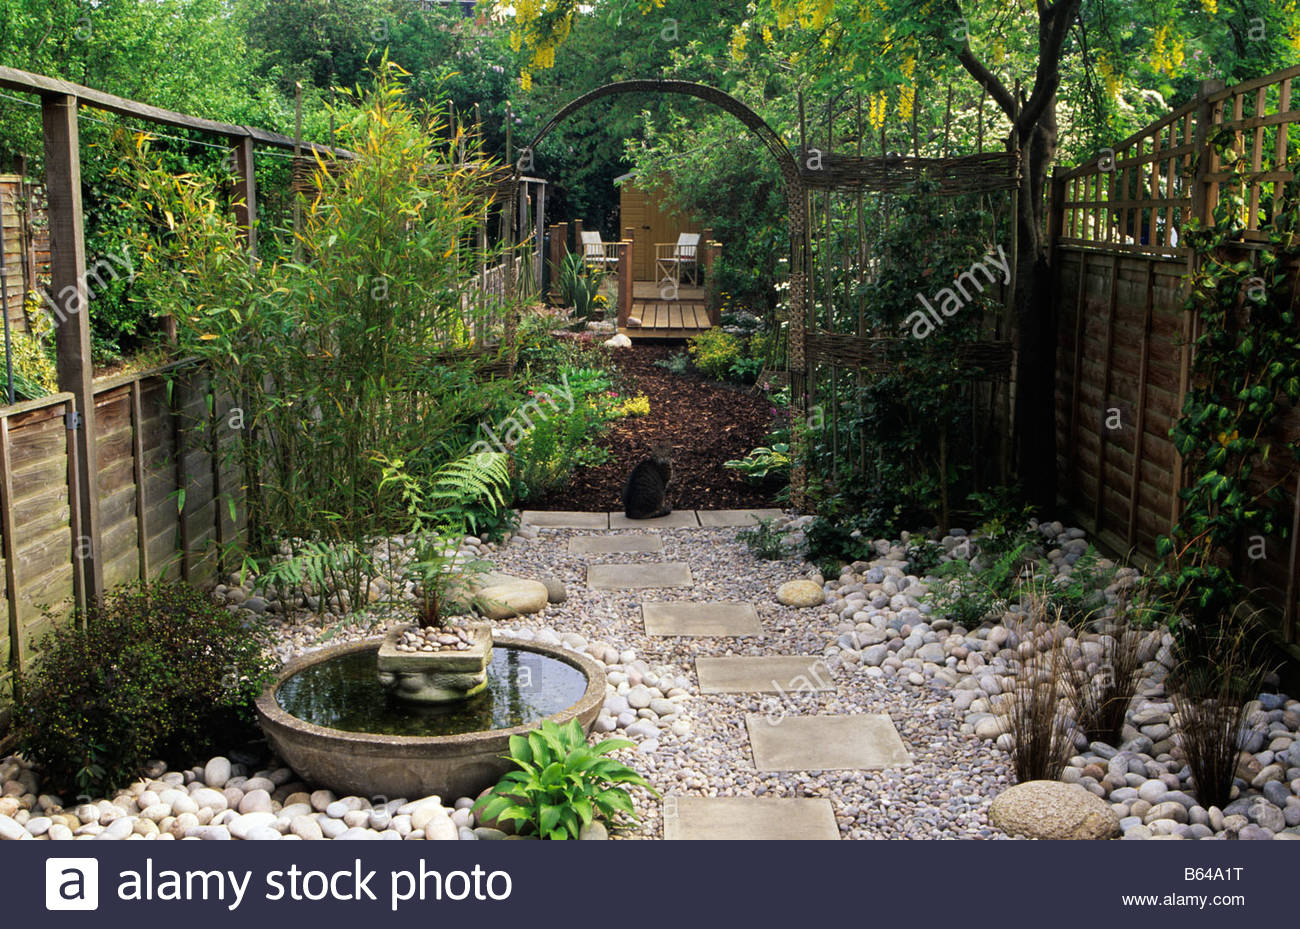 Hallowell rd middx design alan titchmarsh japanese style garden with hallowell rd middx design alan titchmarsh japanese style garden with arch pebbles stones cat wooden fence stepping stones water workwithnaturefo